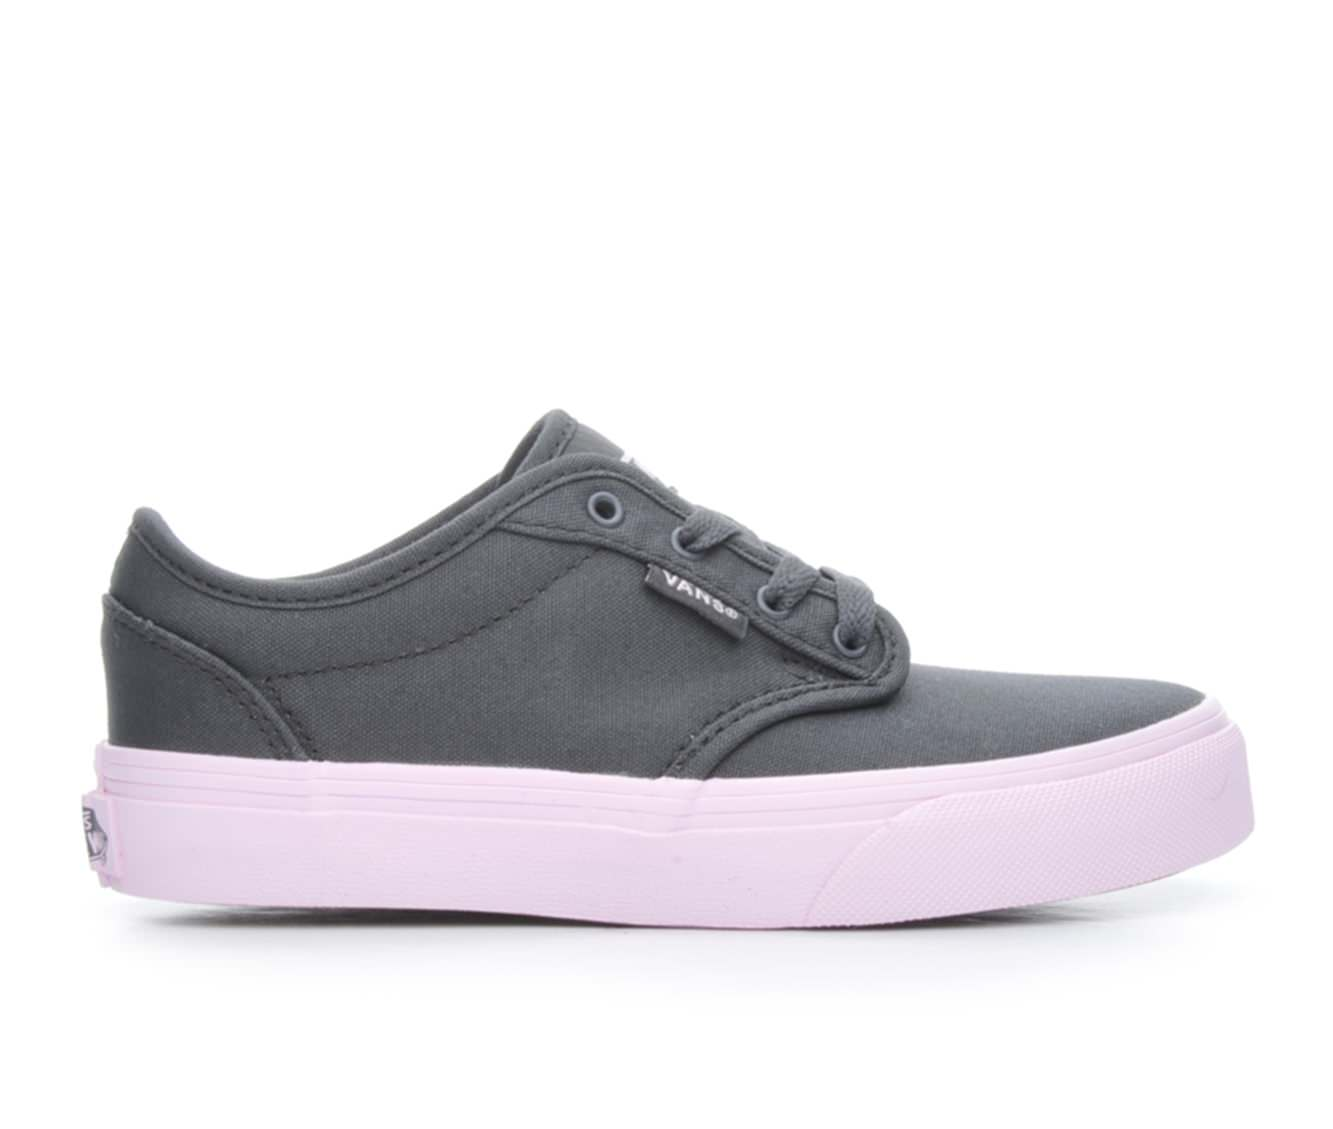 Girls' Vans Atwood G Skate Shoes (Grey)